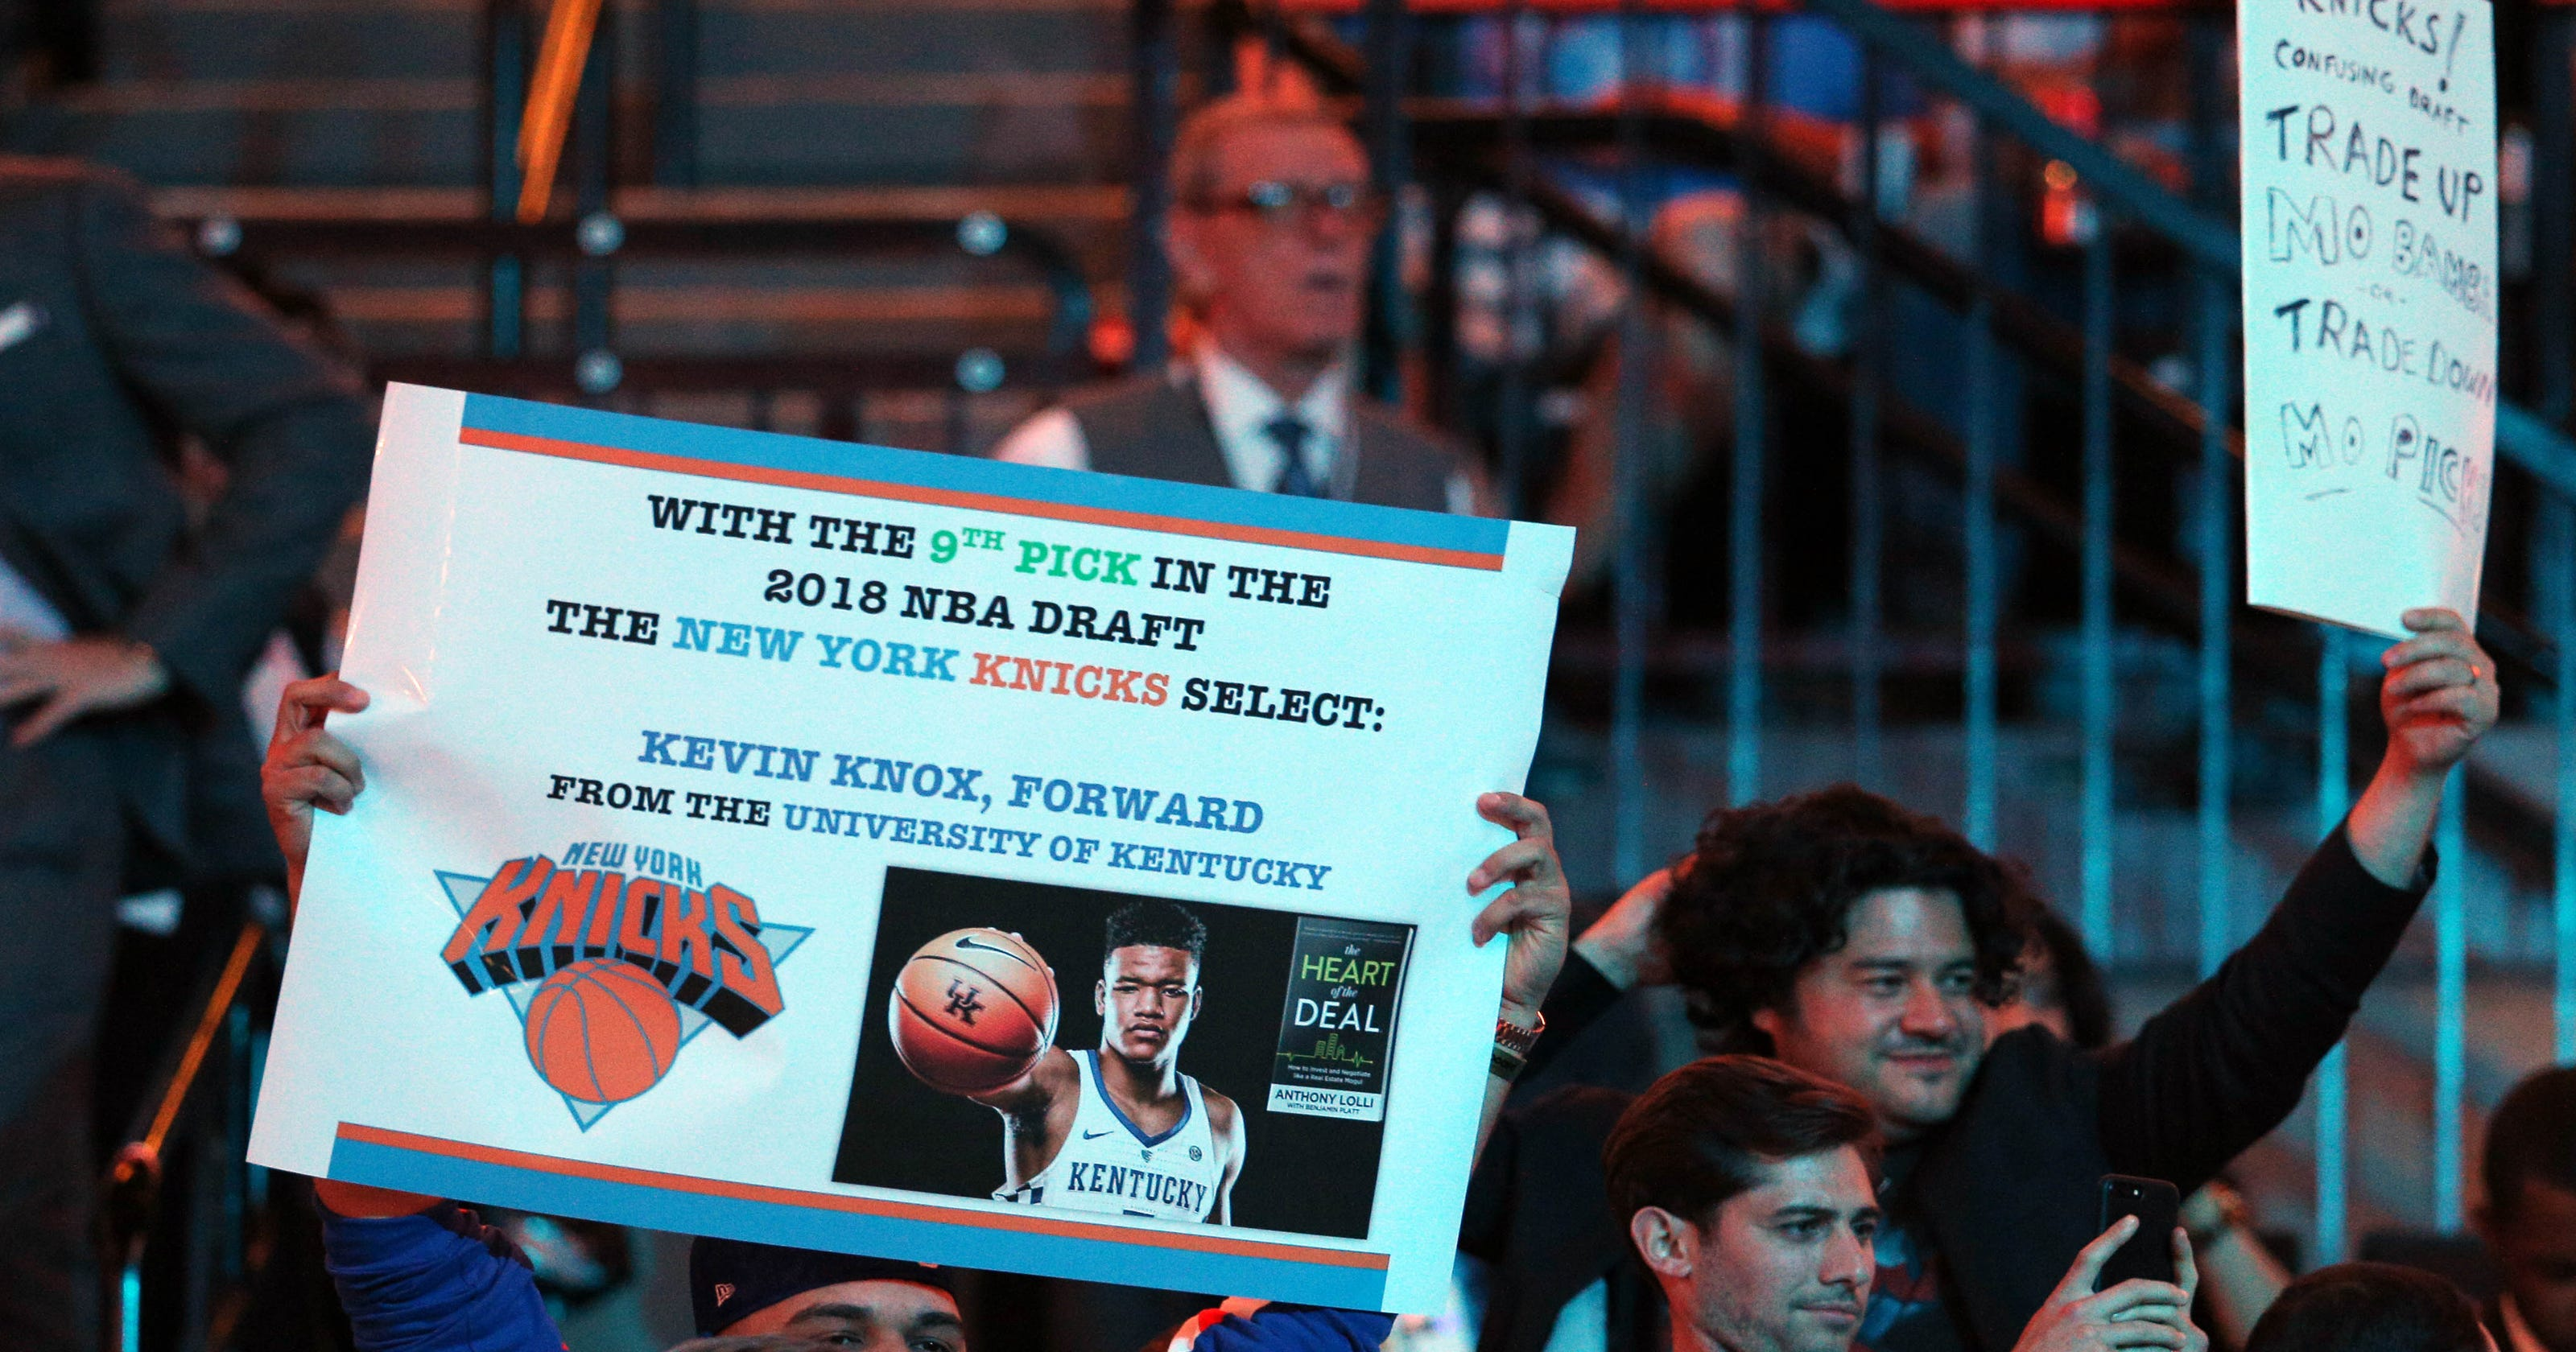 New York Knicks take Kevin Knox in NBA Draft with No. 9 pick  Twitter reacts 1a94f5a87